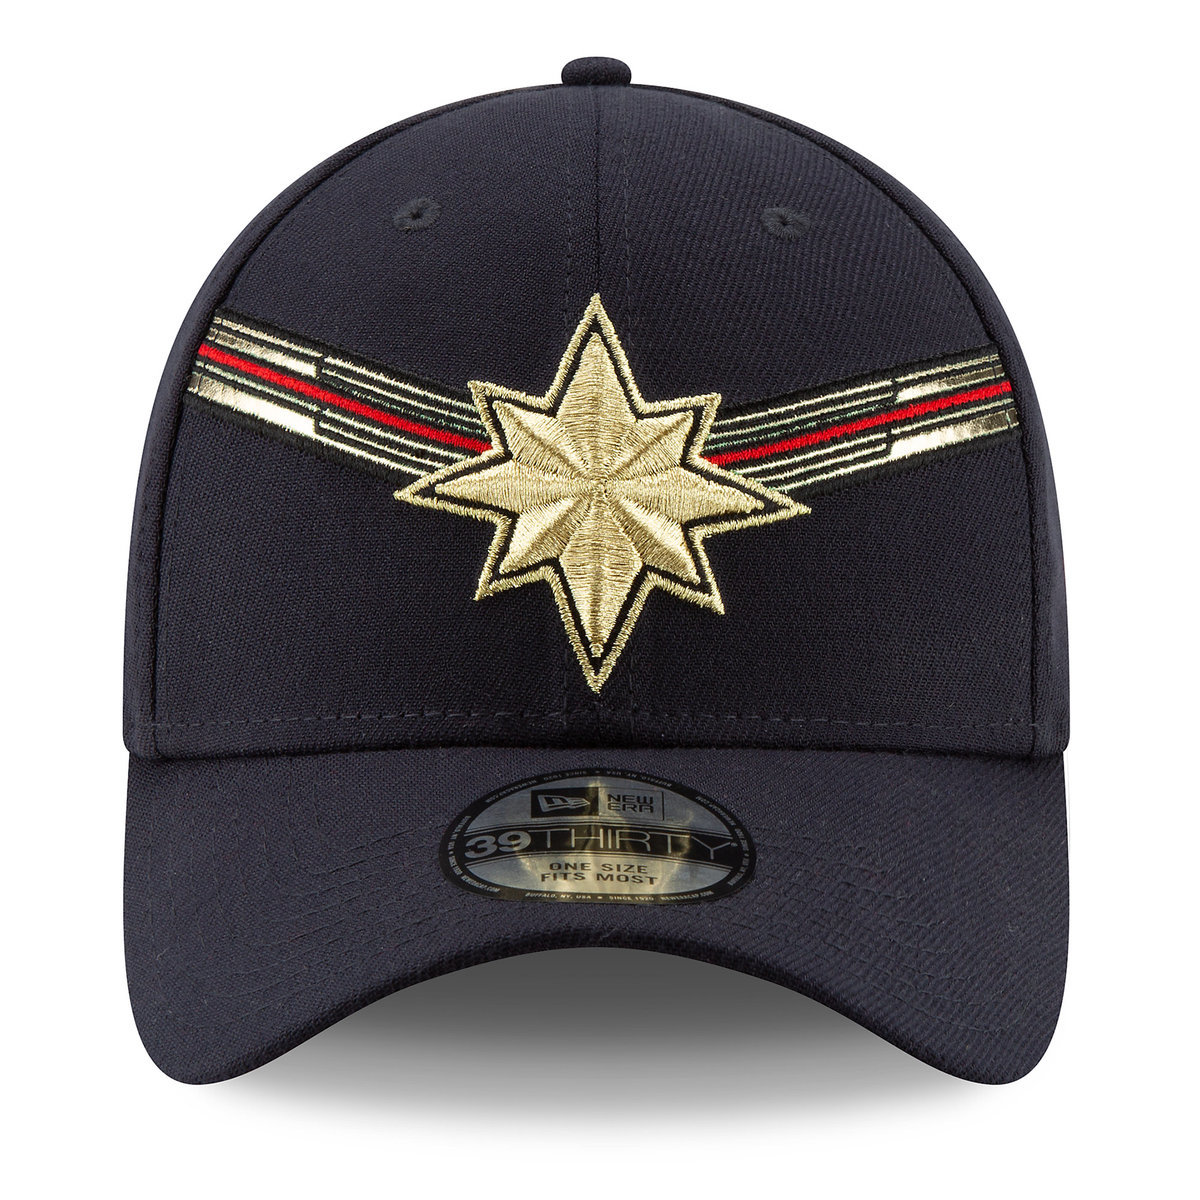 d6e960033c348 Product Image of Marvel s Captain Marvel Baseball Cap for Adults by New Era  - Marvel Studios